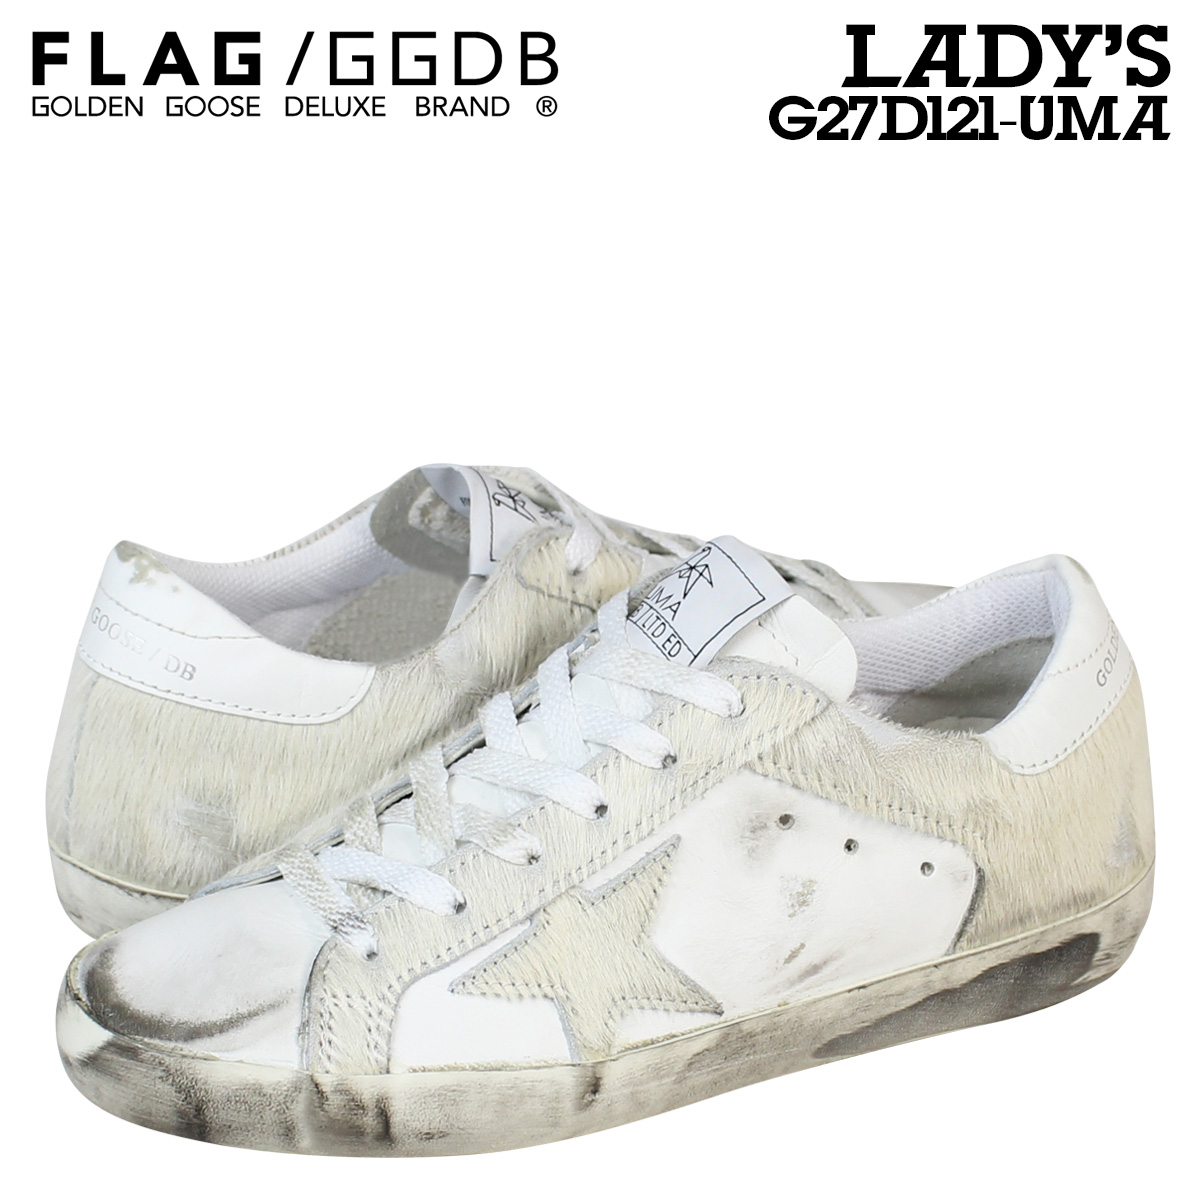 91b692ce8007 Whats up Sports  Golden Goose this sneaker women s SUPER STAR LIMITED  EDITION made in Italy G27D121 UMA shoes white